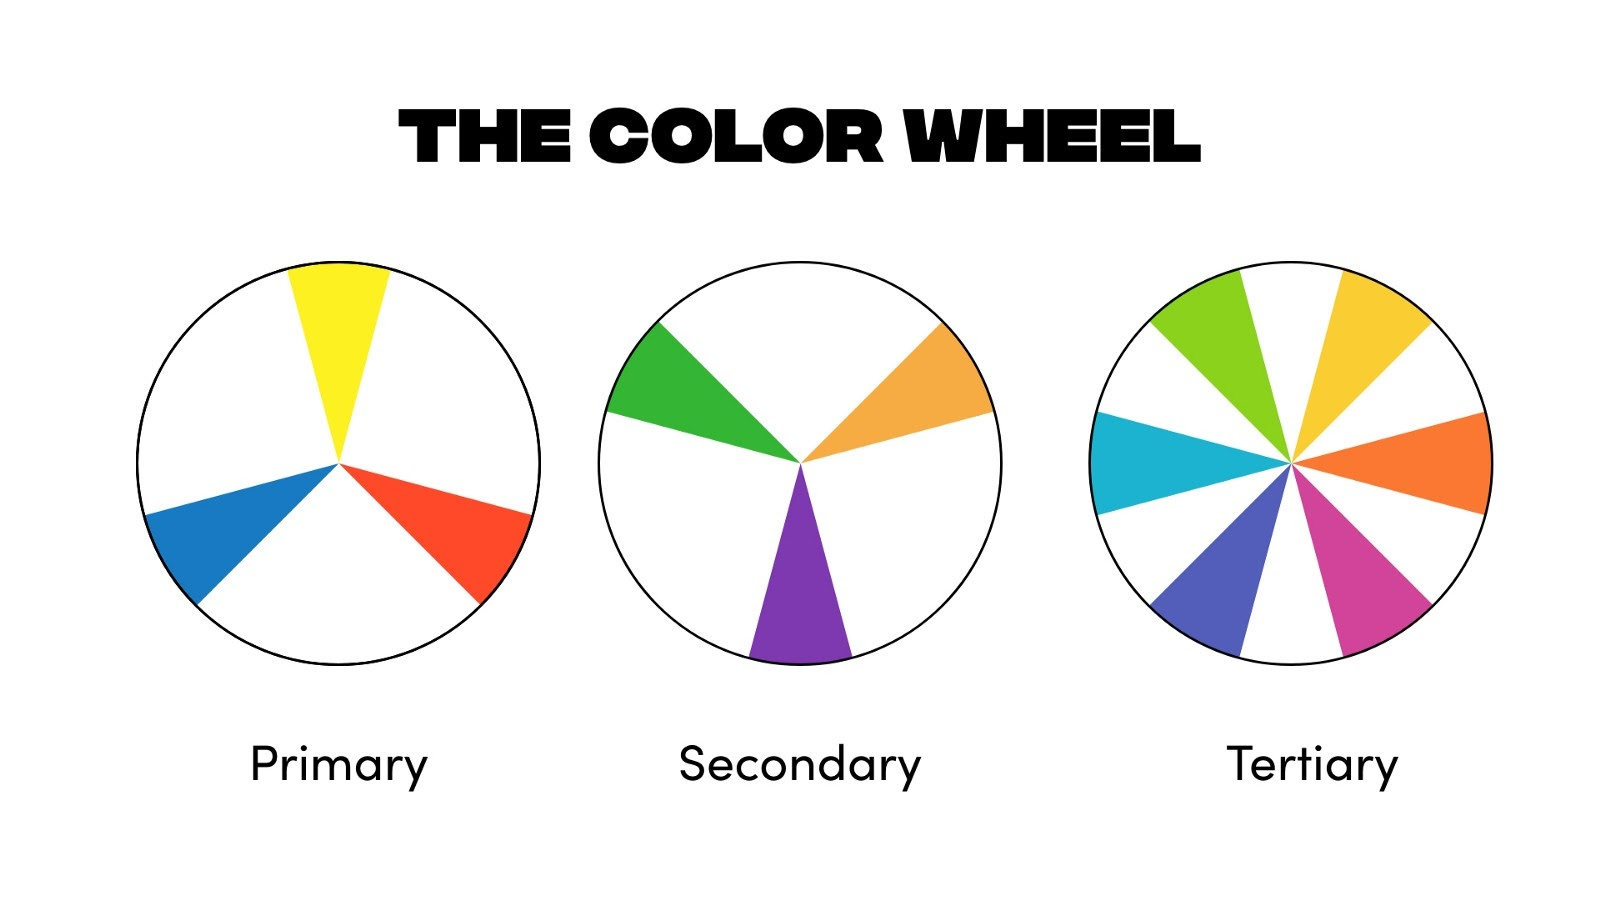 The color wheel is divided into primary, secondary, and tertiary colors